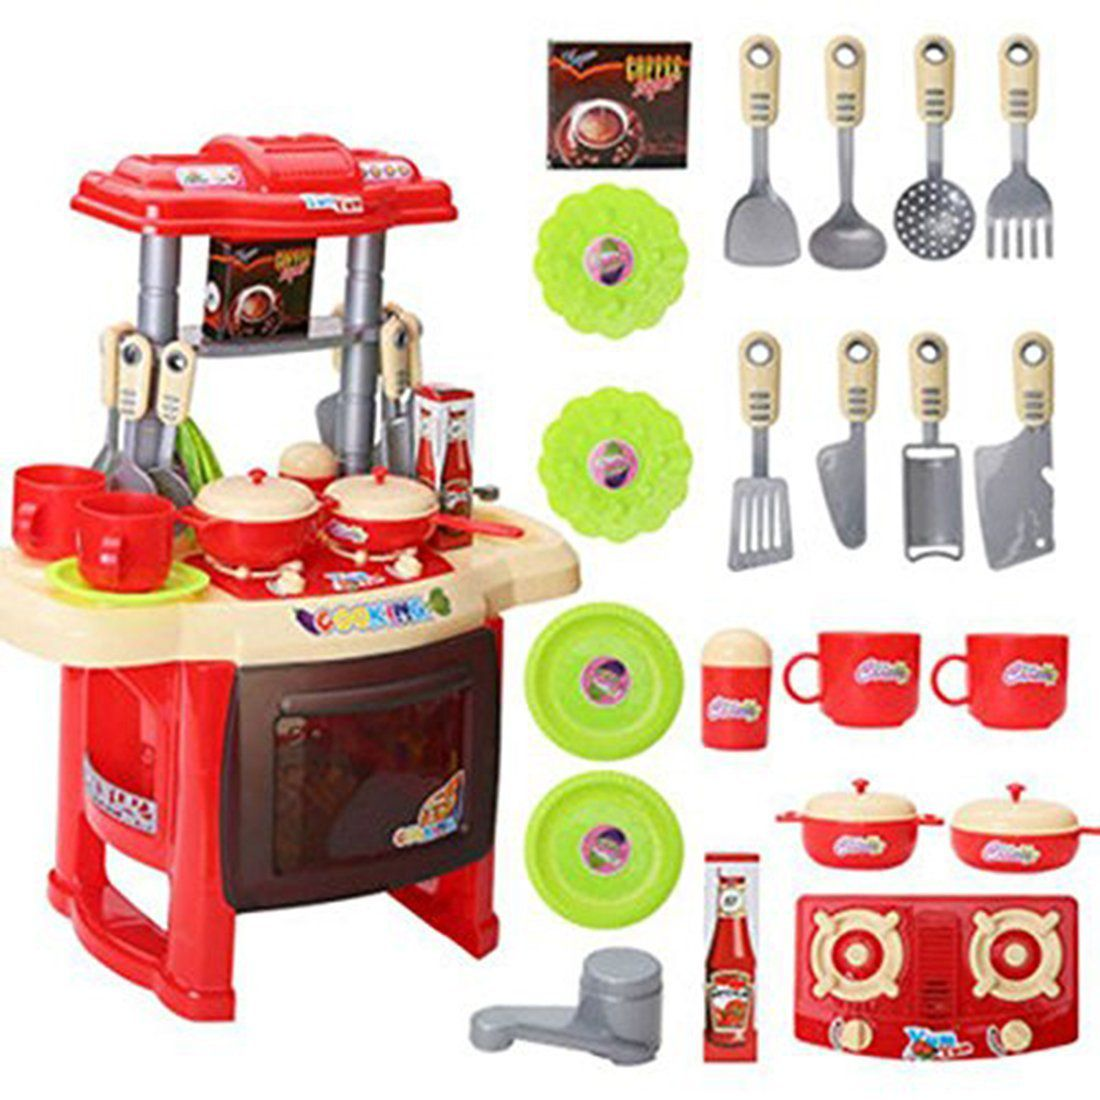 Webby kids kitchen set children kitchen toys large kitchen for Kitchen set toys divisoria